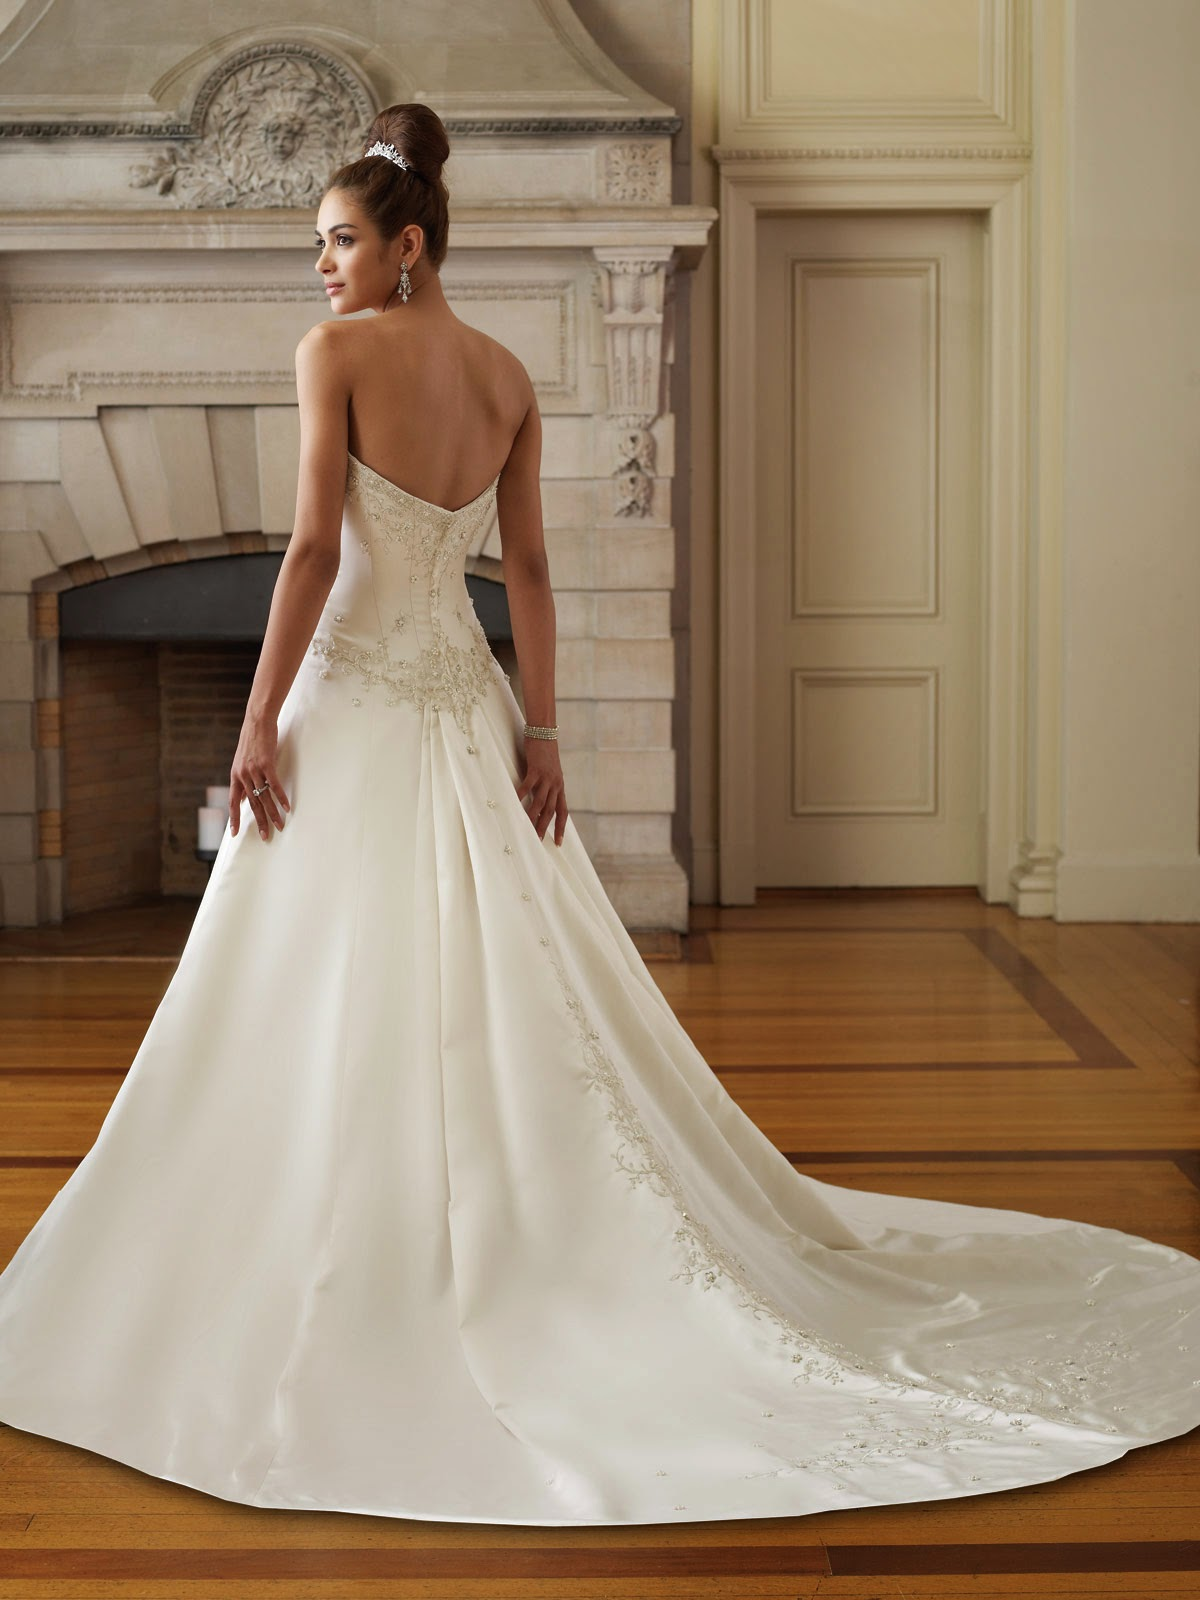 Wedding dress about choosing bridal underwear wedding for Undergarments for wedding dresses